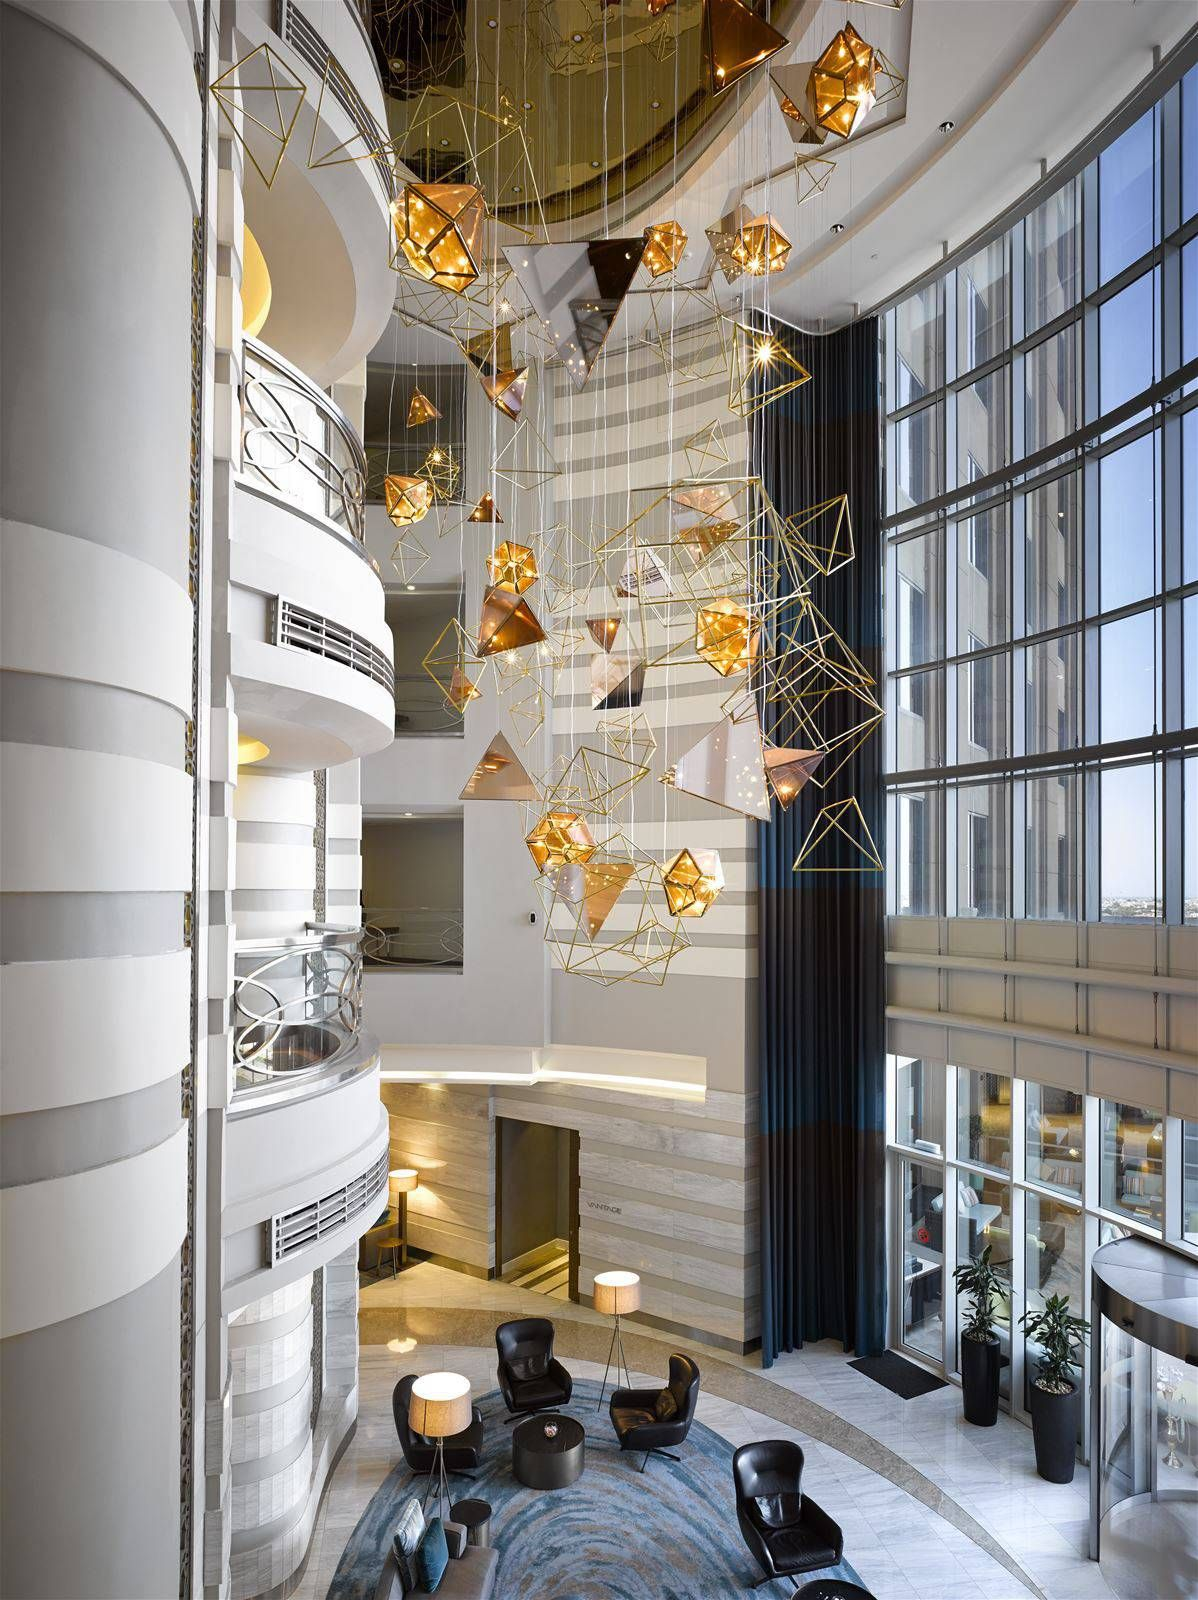 Preciosa lighting is an innovative company which creates for Design hotel group